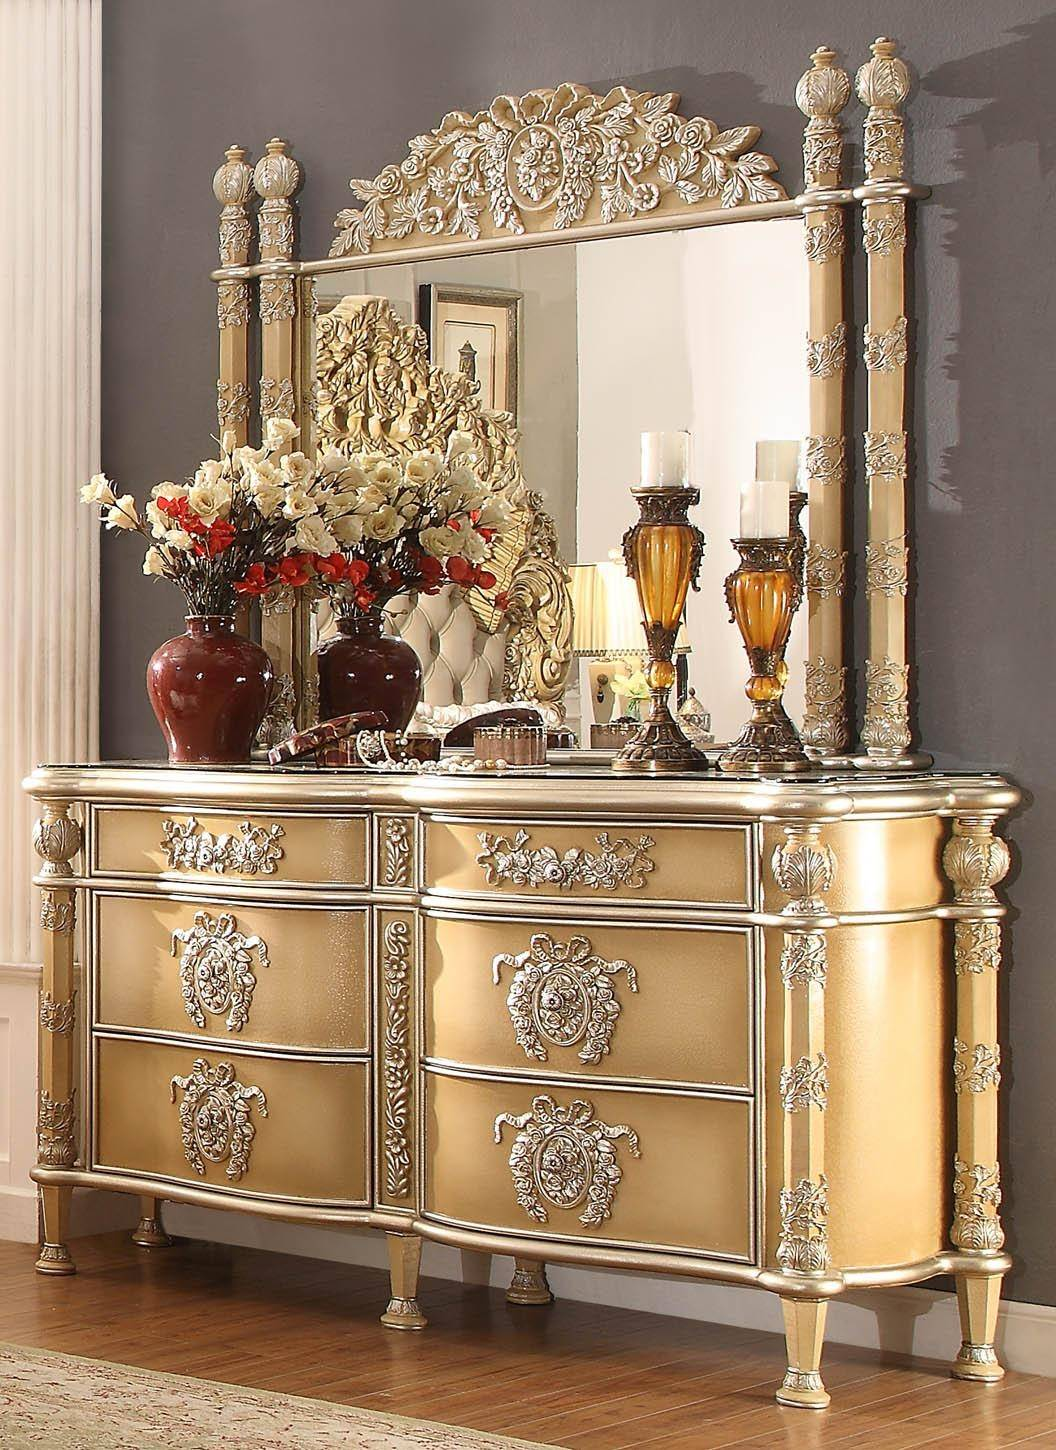 Homey Design Hd 5801 Luxury Ivory Antique Gold Tufted